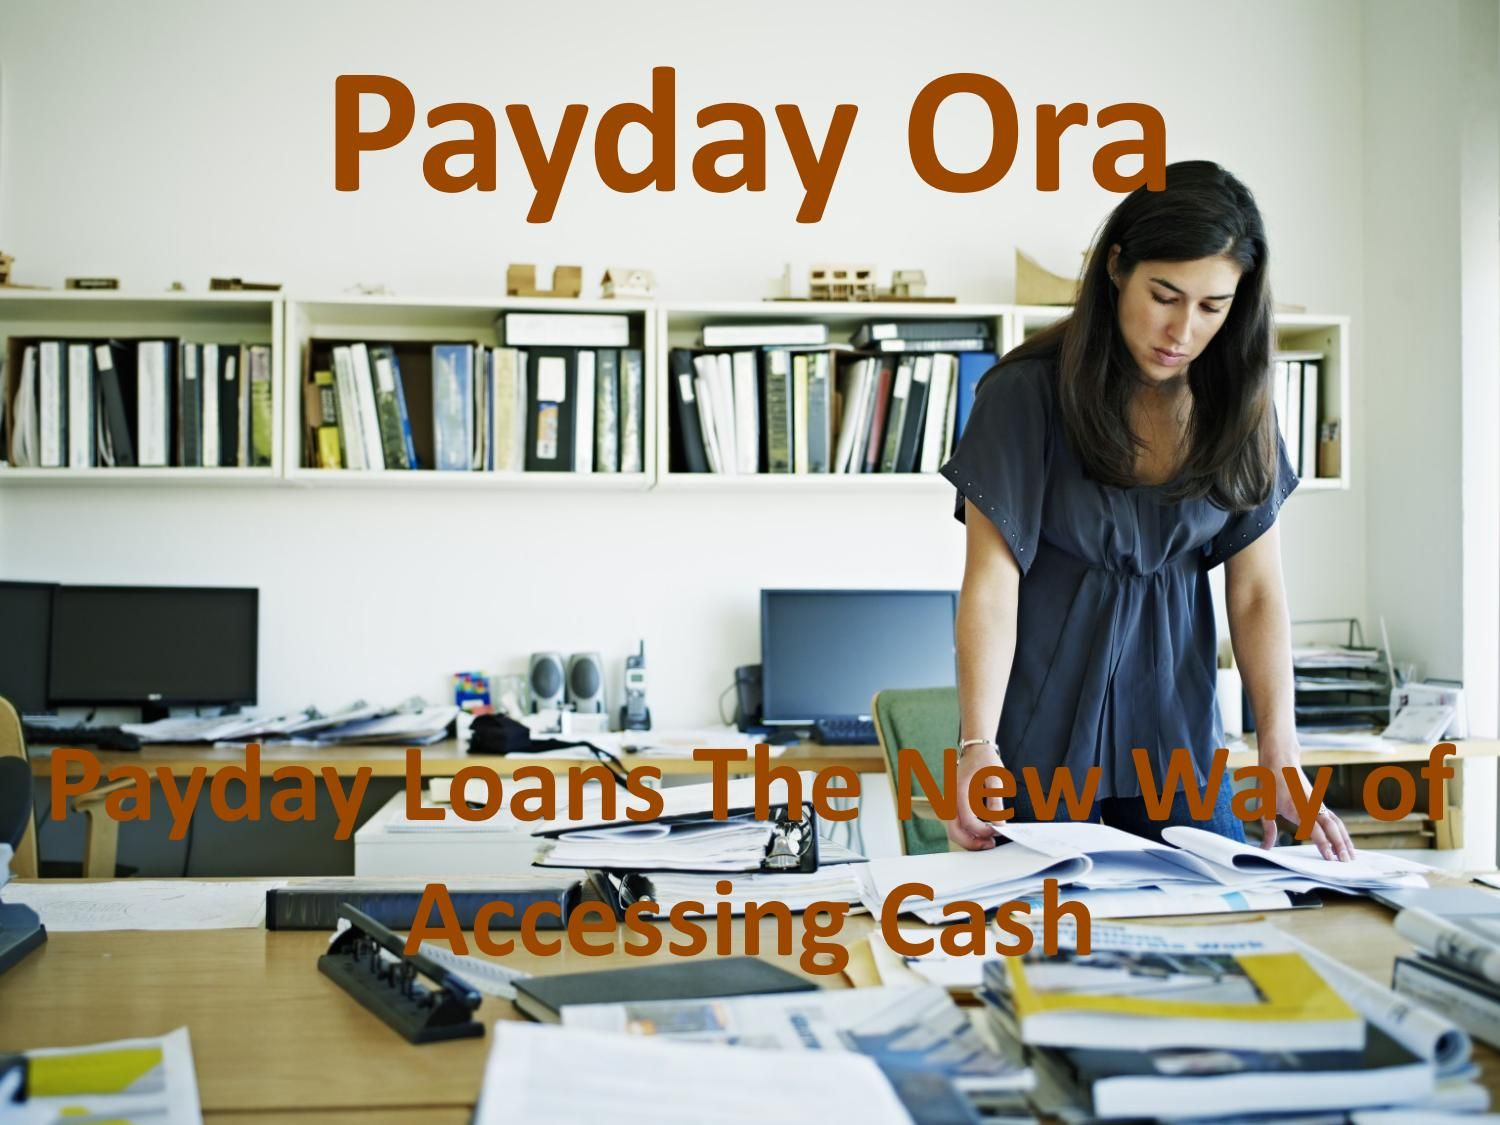 Apollo payday loans picture 5